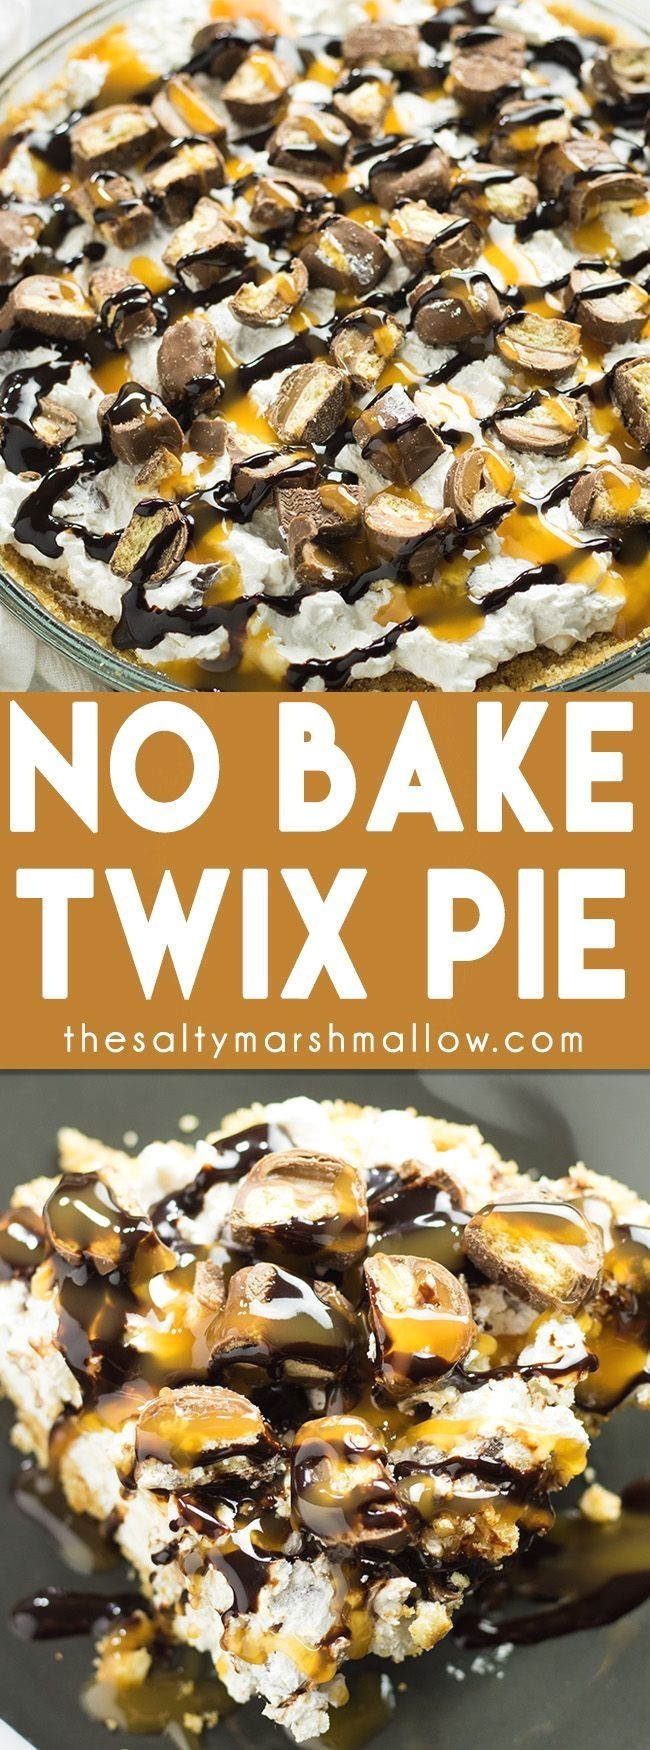 No Bake Twix Pie: This pie is an easy, cool and creamy, summer dessert recipe! No baking involved with a delicious vanilla wafer crust, cheesecake like filling and loaded with Twix candy bars! (Dessert Recipes)